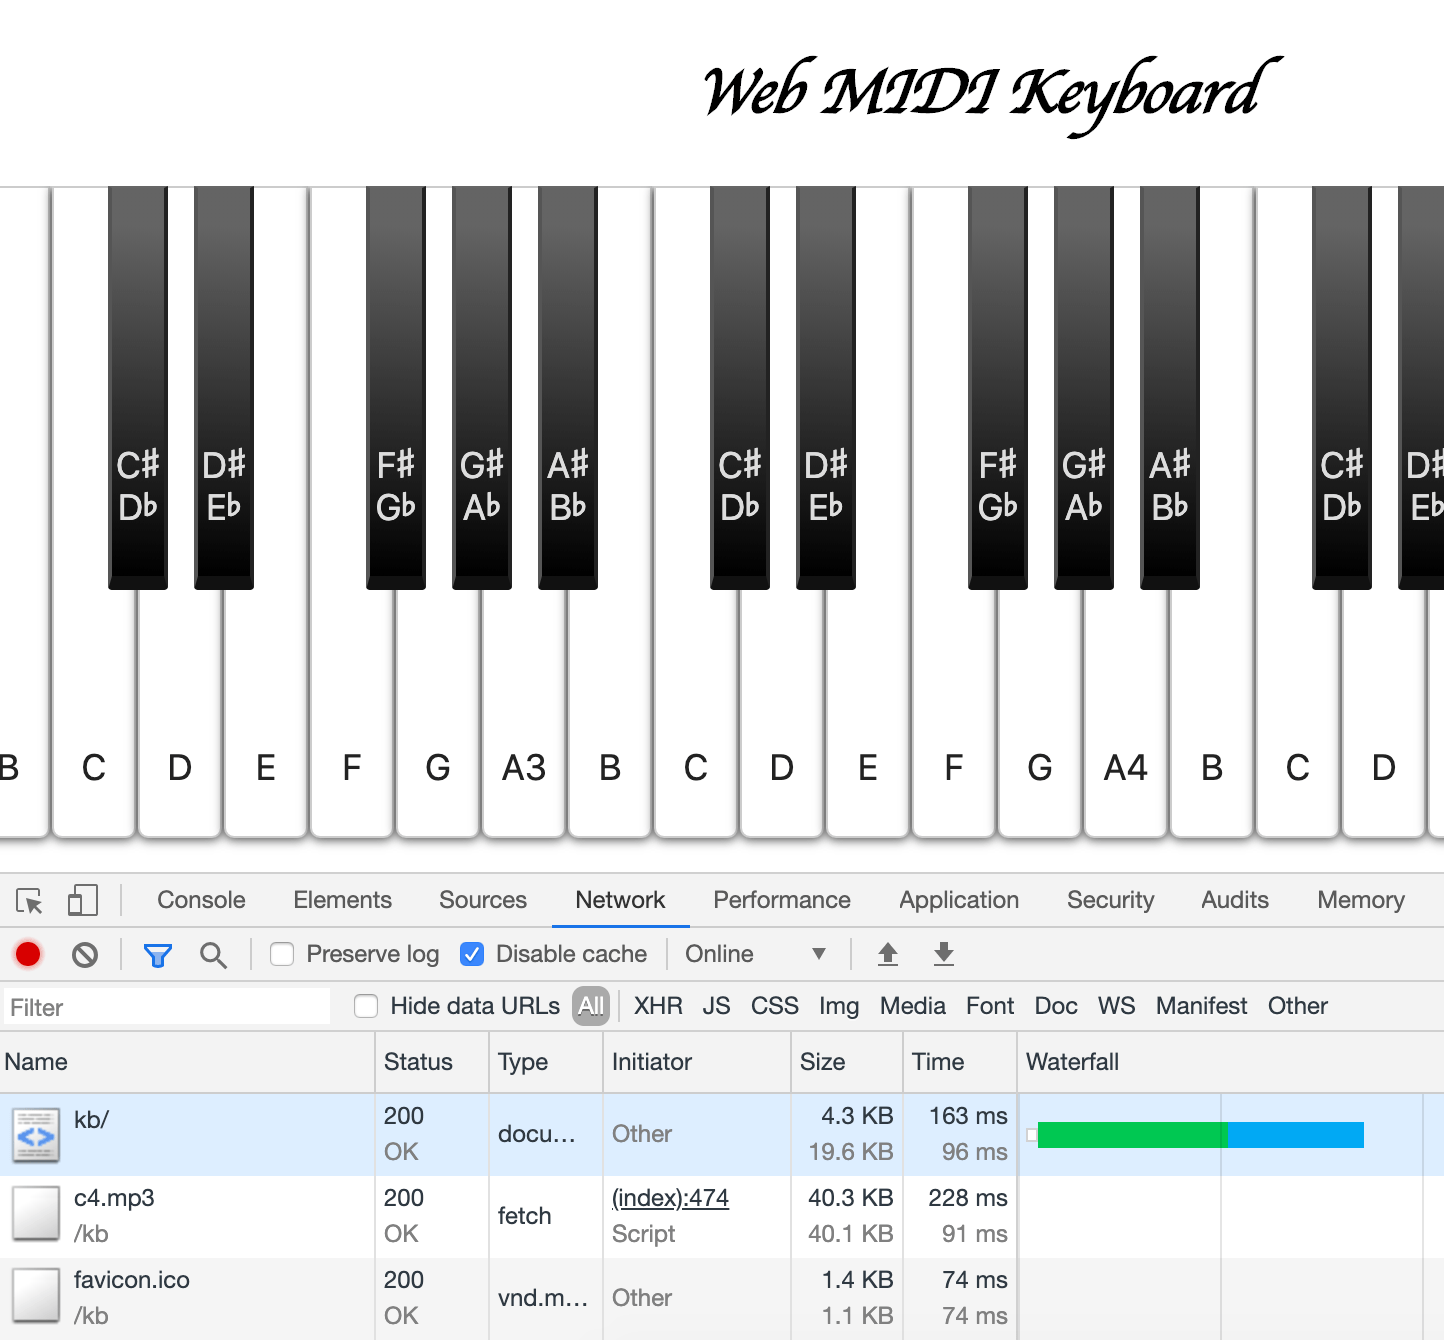 webmidikeyboard waterfall